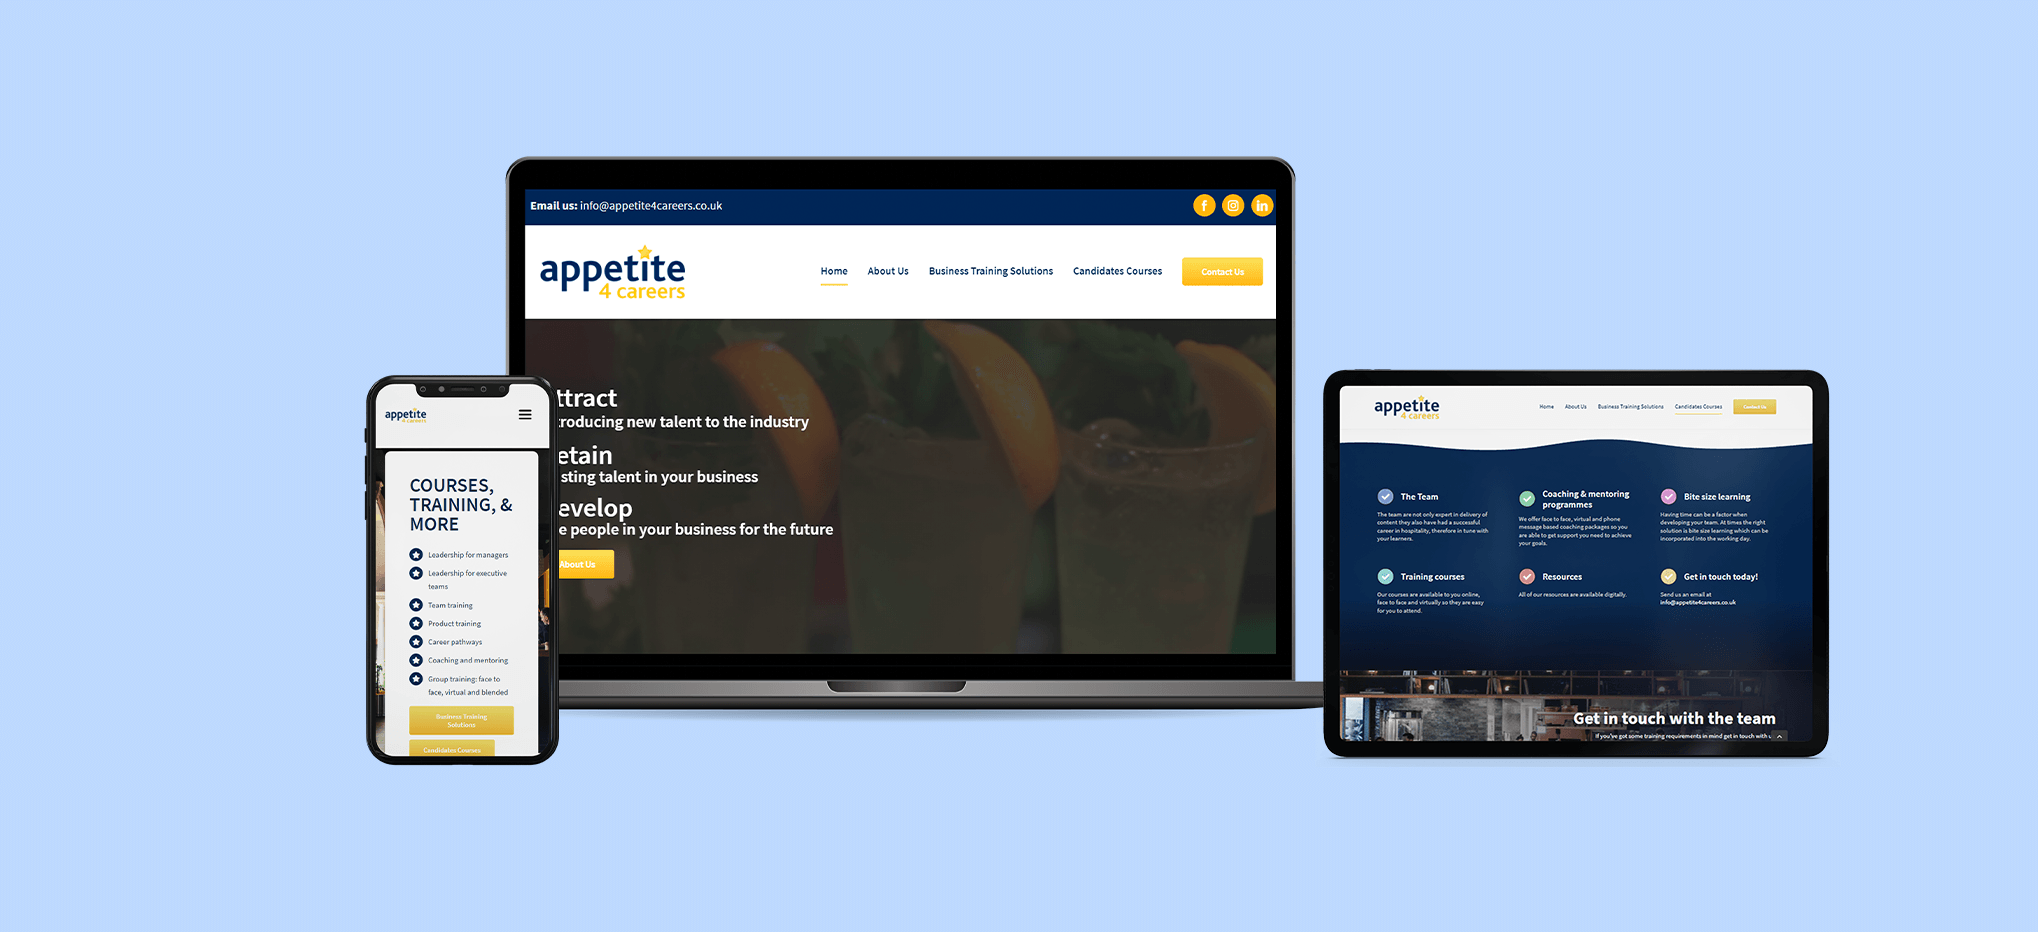 Case Study - Appetite4Careers featured image